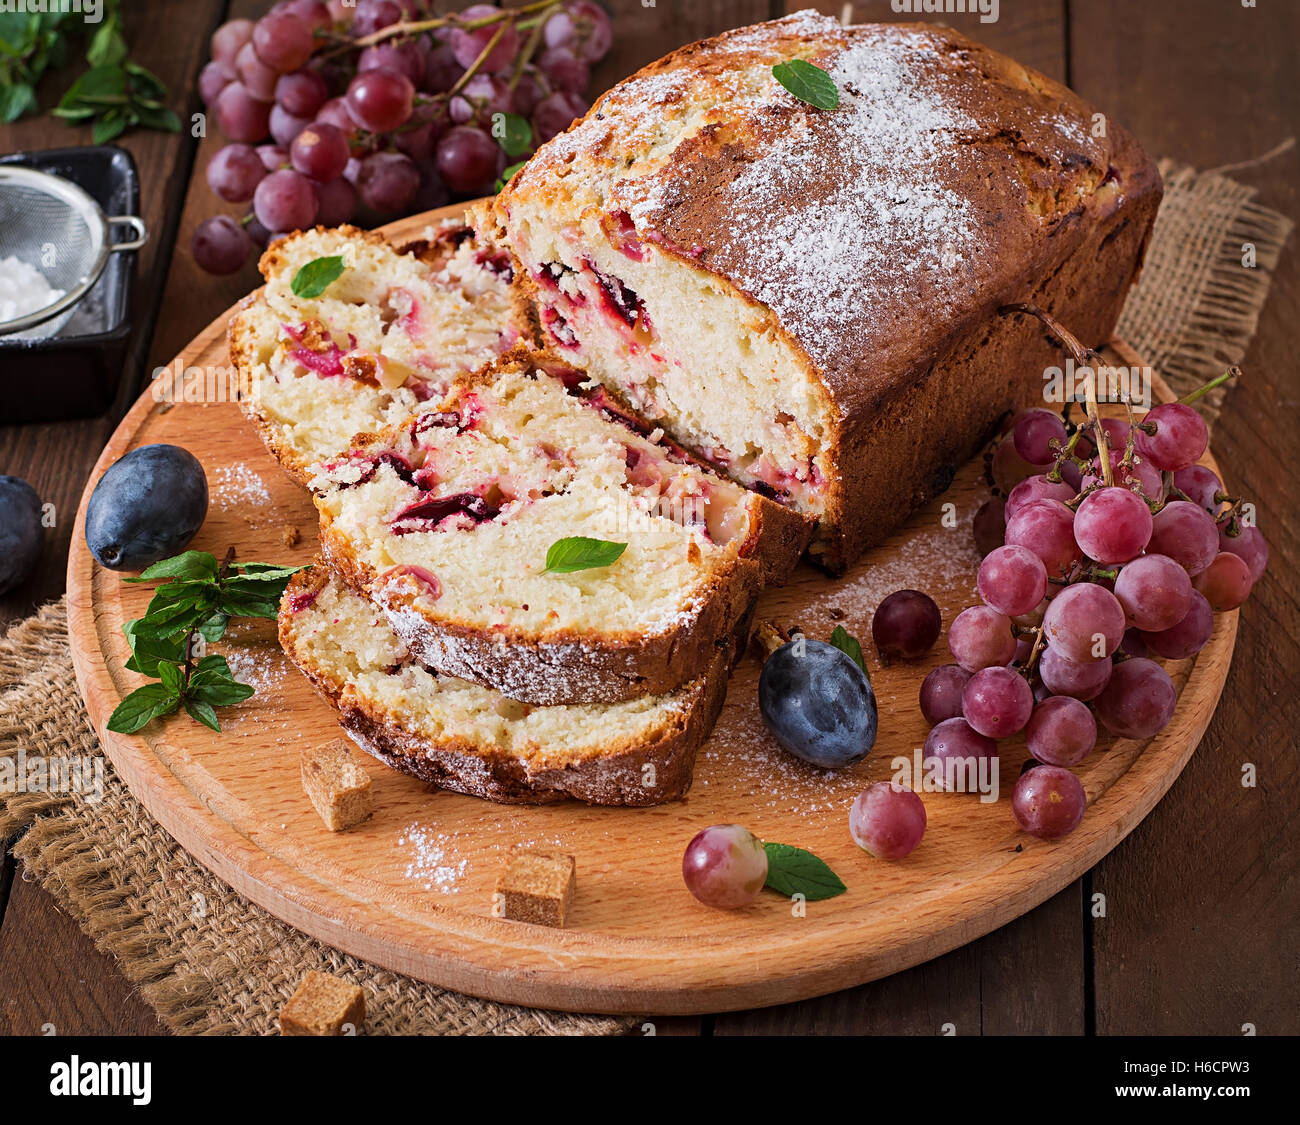 Juicy and tender cupcake with plums and grapes Stock Photo